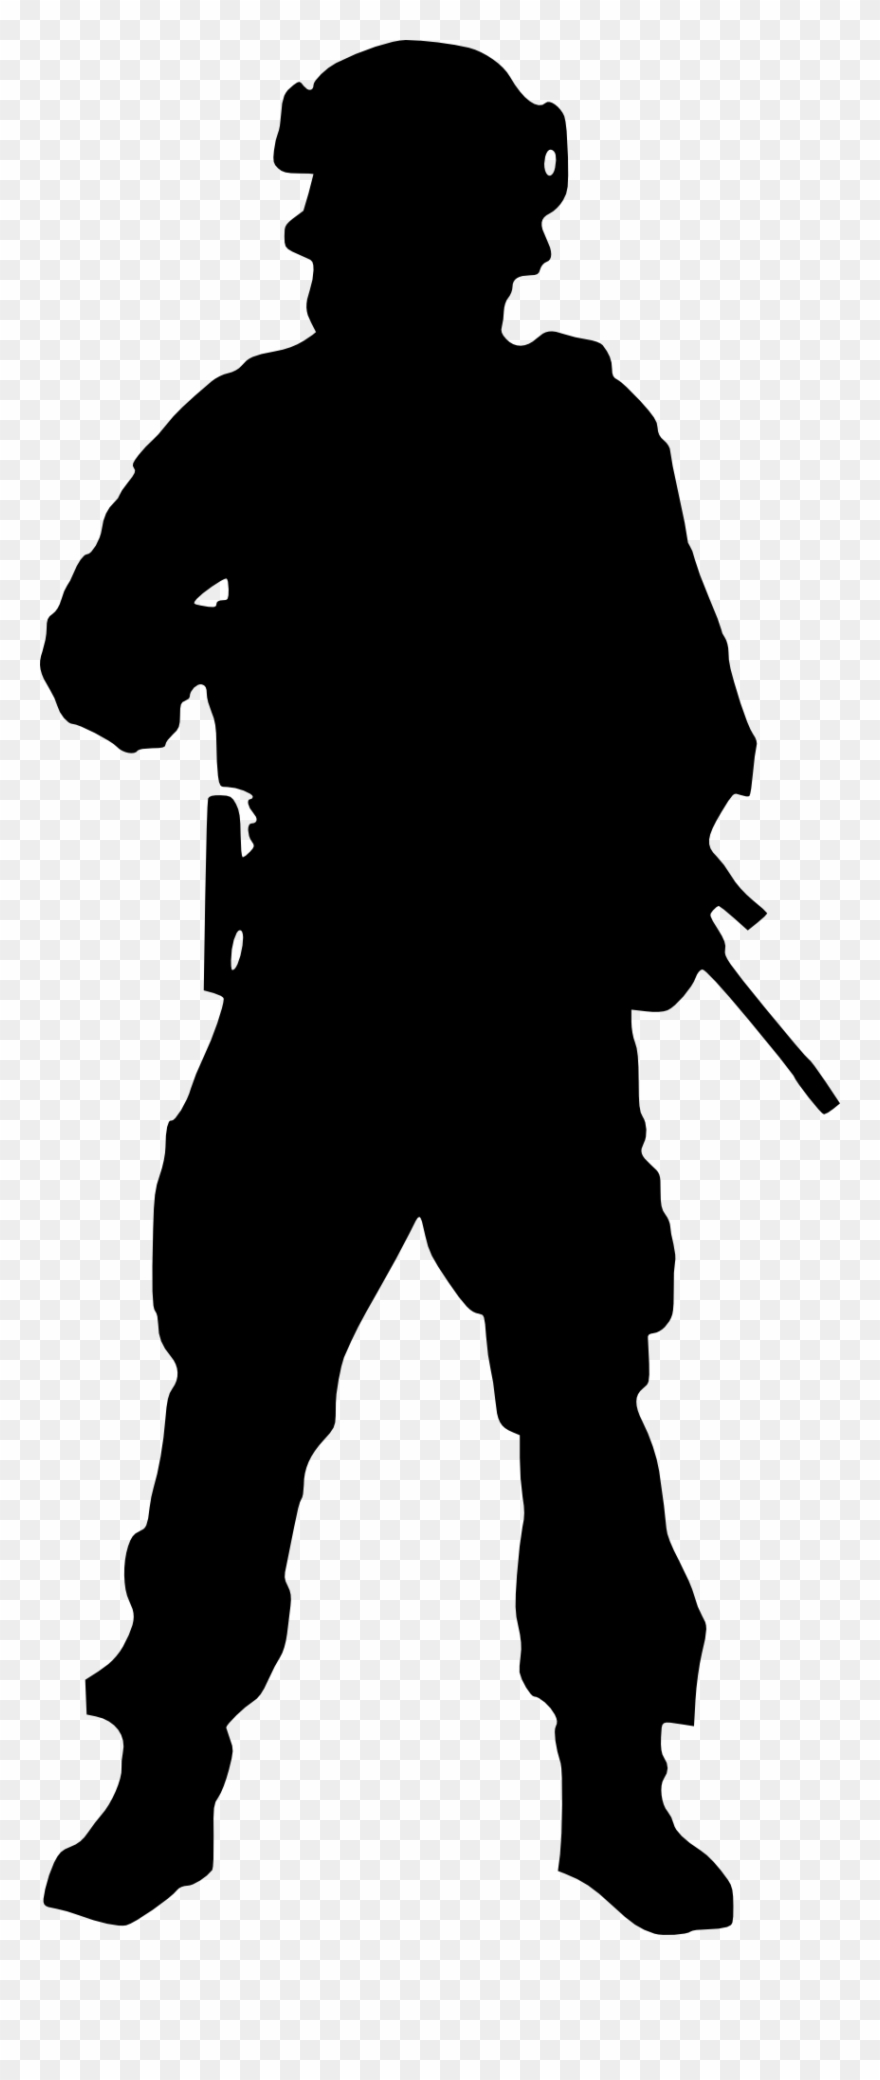 Army clipart silhouette, Army silhouette Transparent FREE.